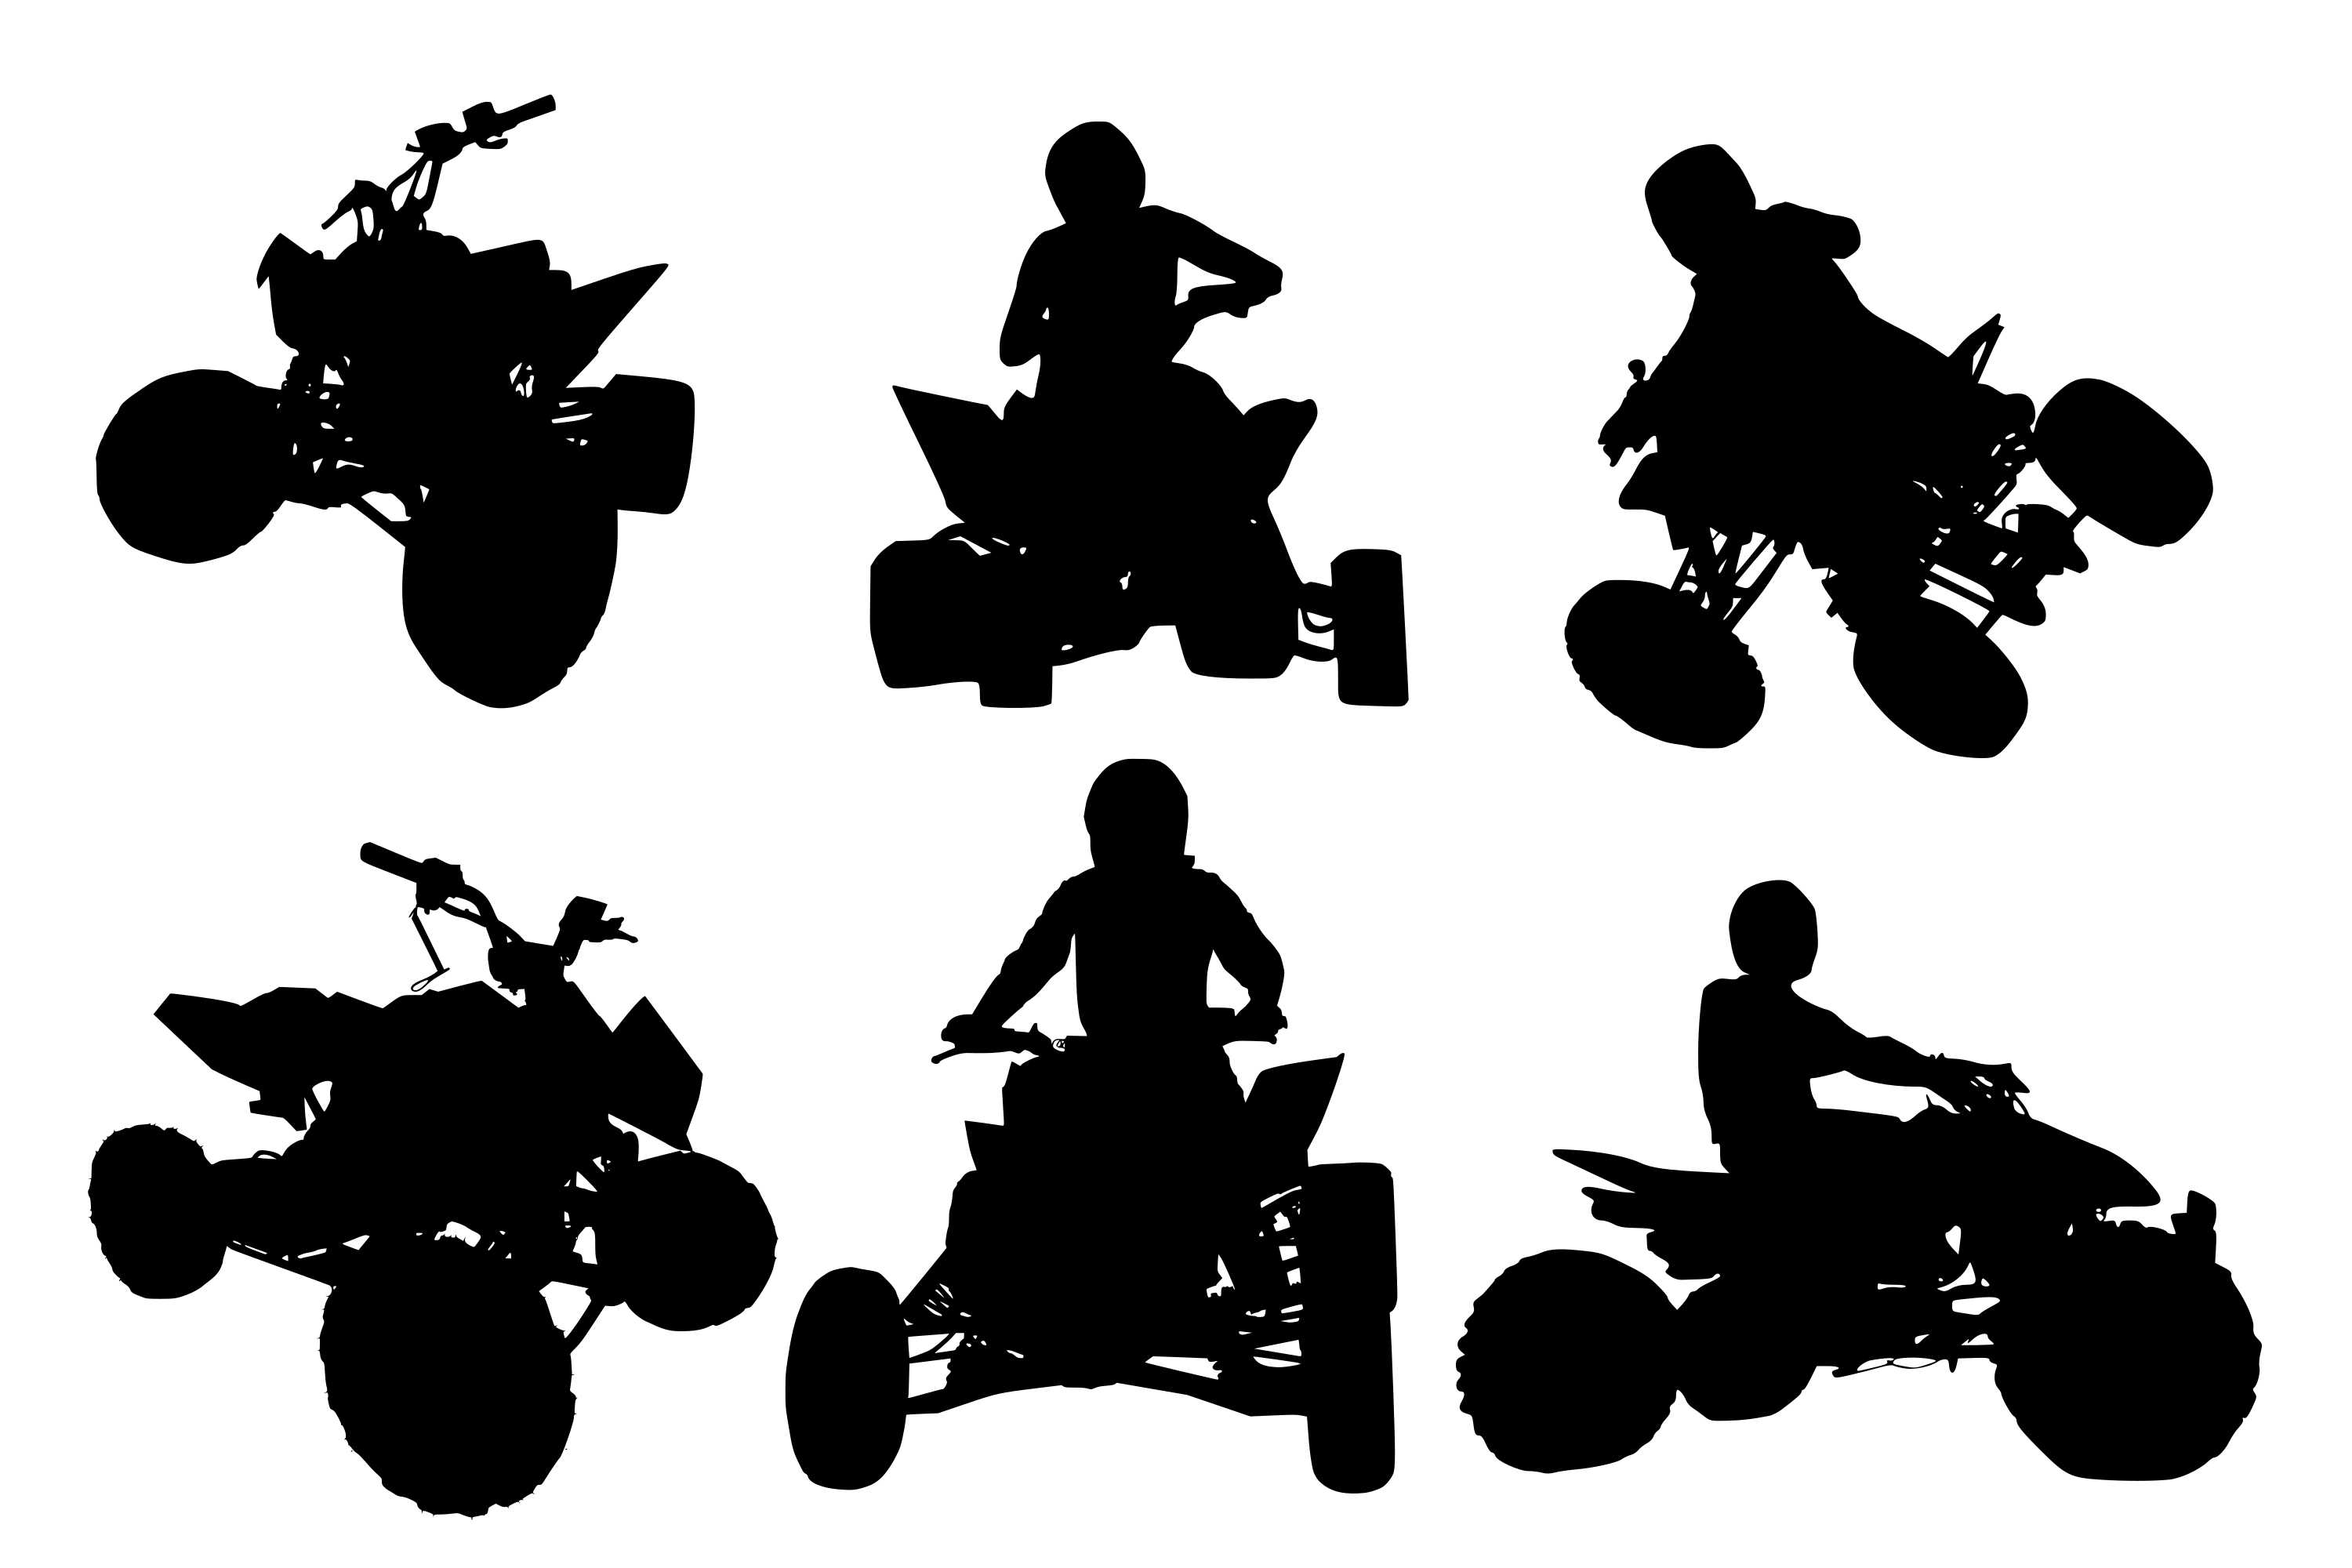 atv-quad-bike-silhouette-cover.jpg